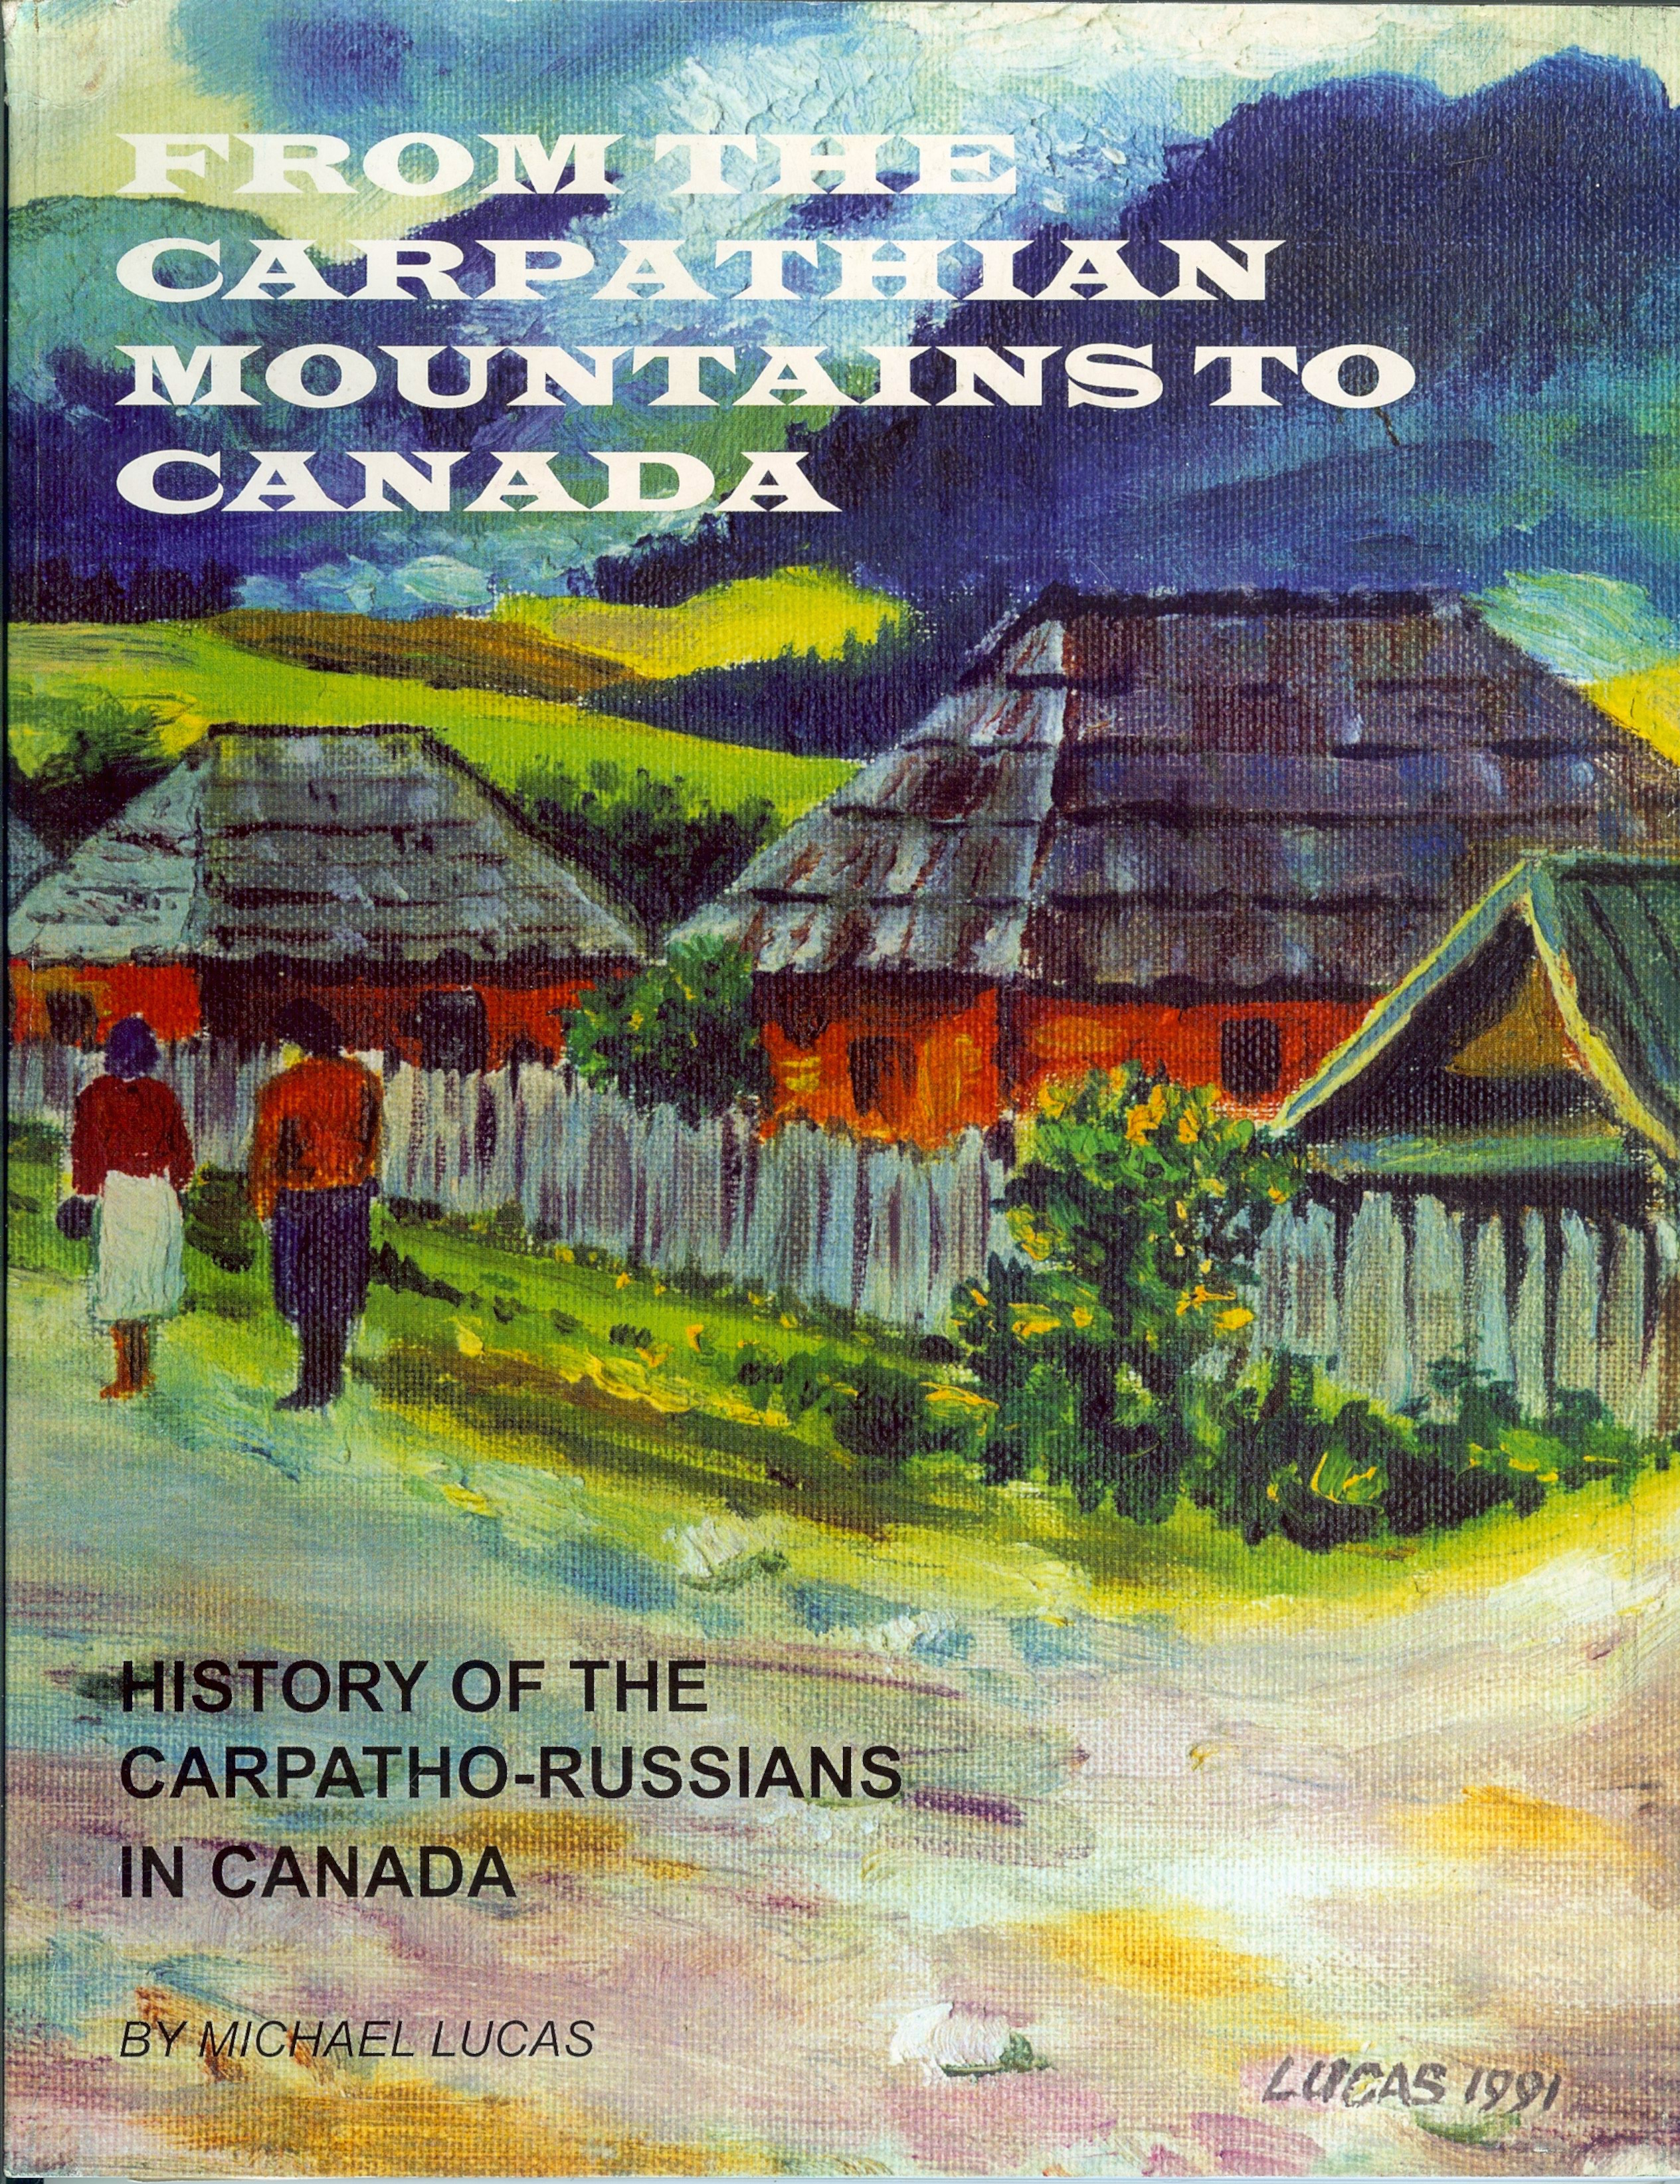 From the Carpathian Mountains to Canada Carpathians Mountains Map Russia on ural mountains map, kjolen mountains map, baltic sea russia map, pechora river russia map, malta russia map, bessarabia russia map, france russia map, slovakia russia map, balkan mountains russia map, dubrovnik russia map, north european plain russia map, canada russia map, altai mountains russia map, croatia russia map, iceland russia map, volgograd russia map, tallinn russia map, sudeten mountains map, albania russia map, danube russia map,